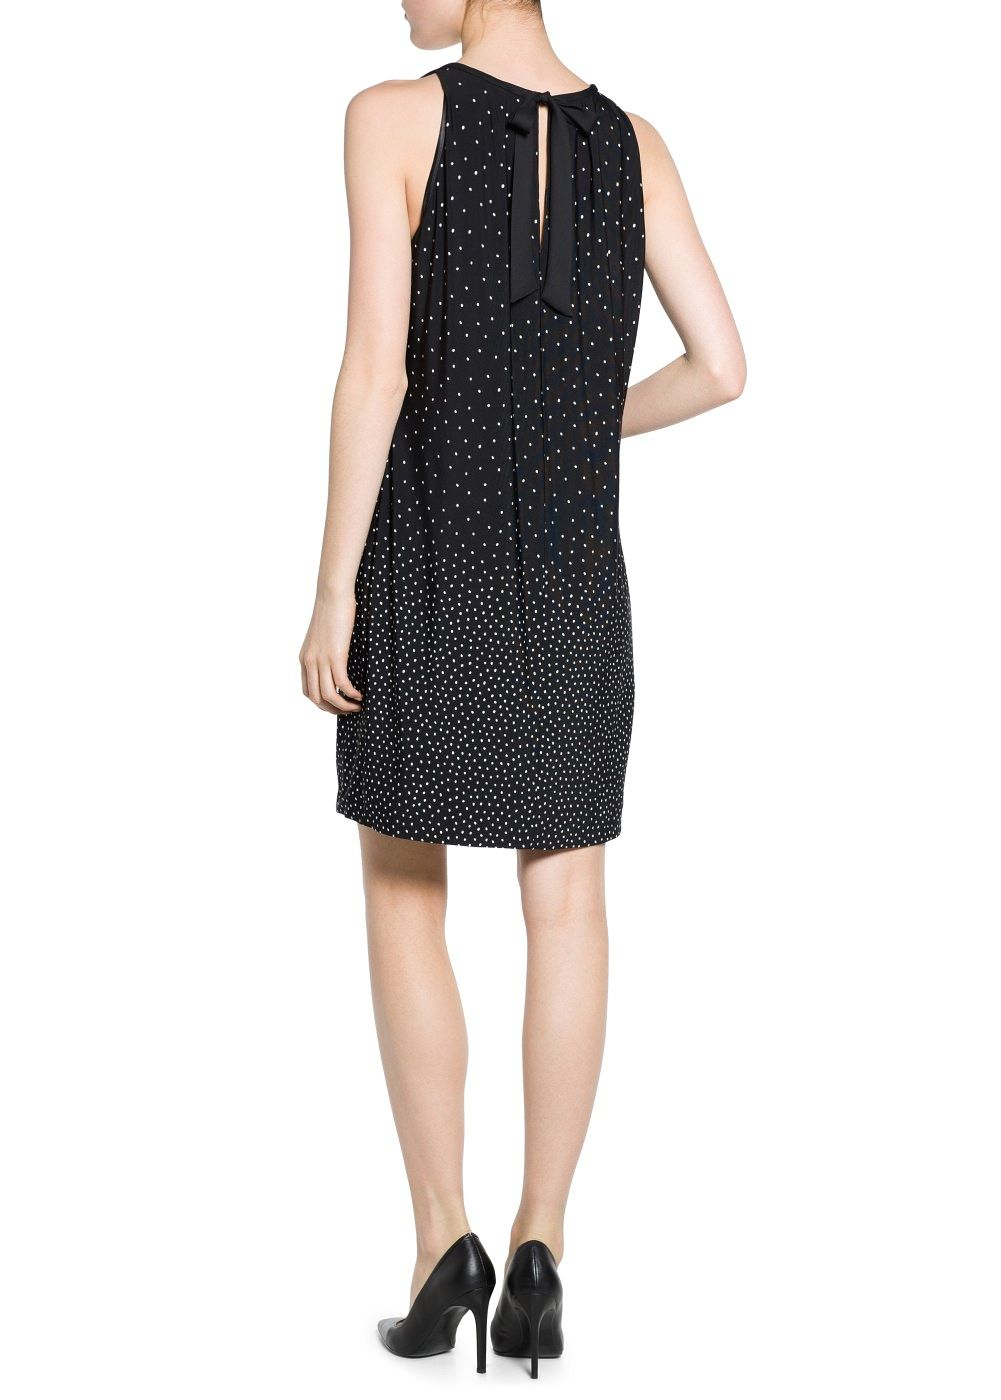 Bow polkadot dress polka dot print